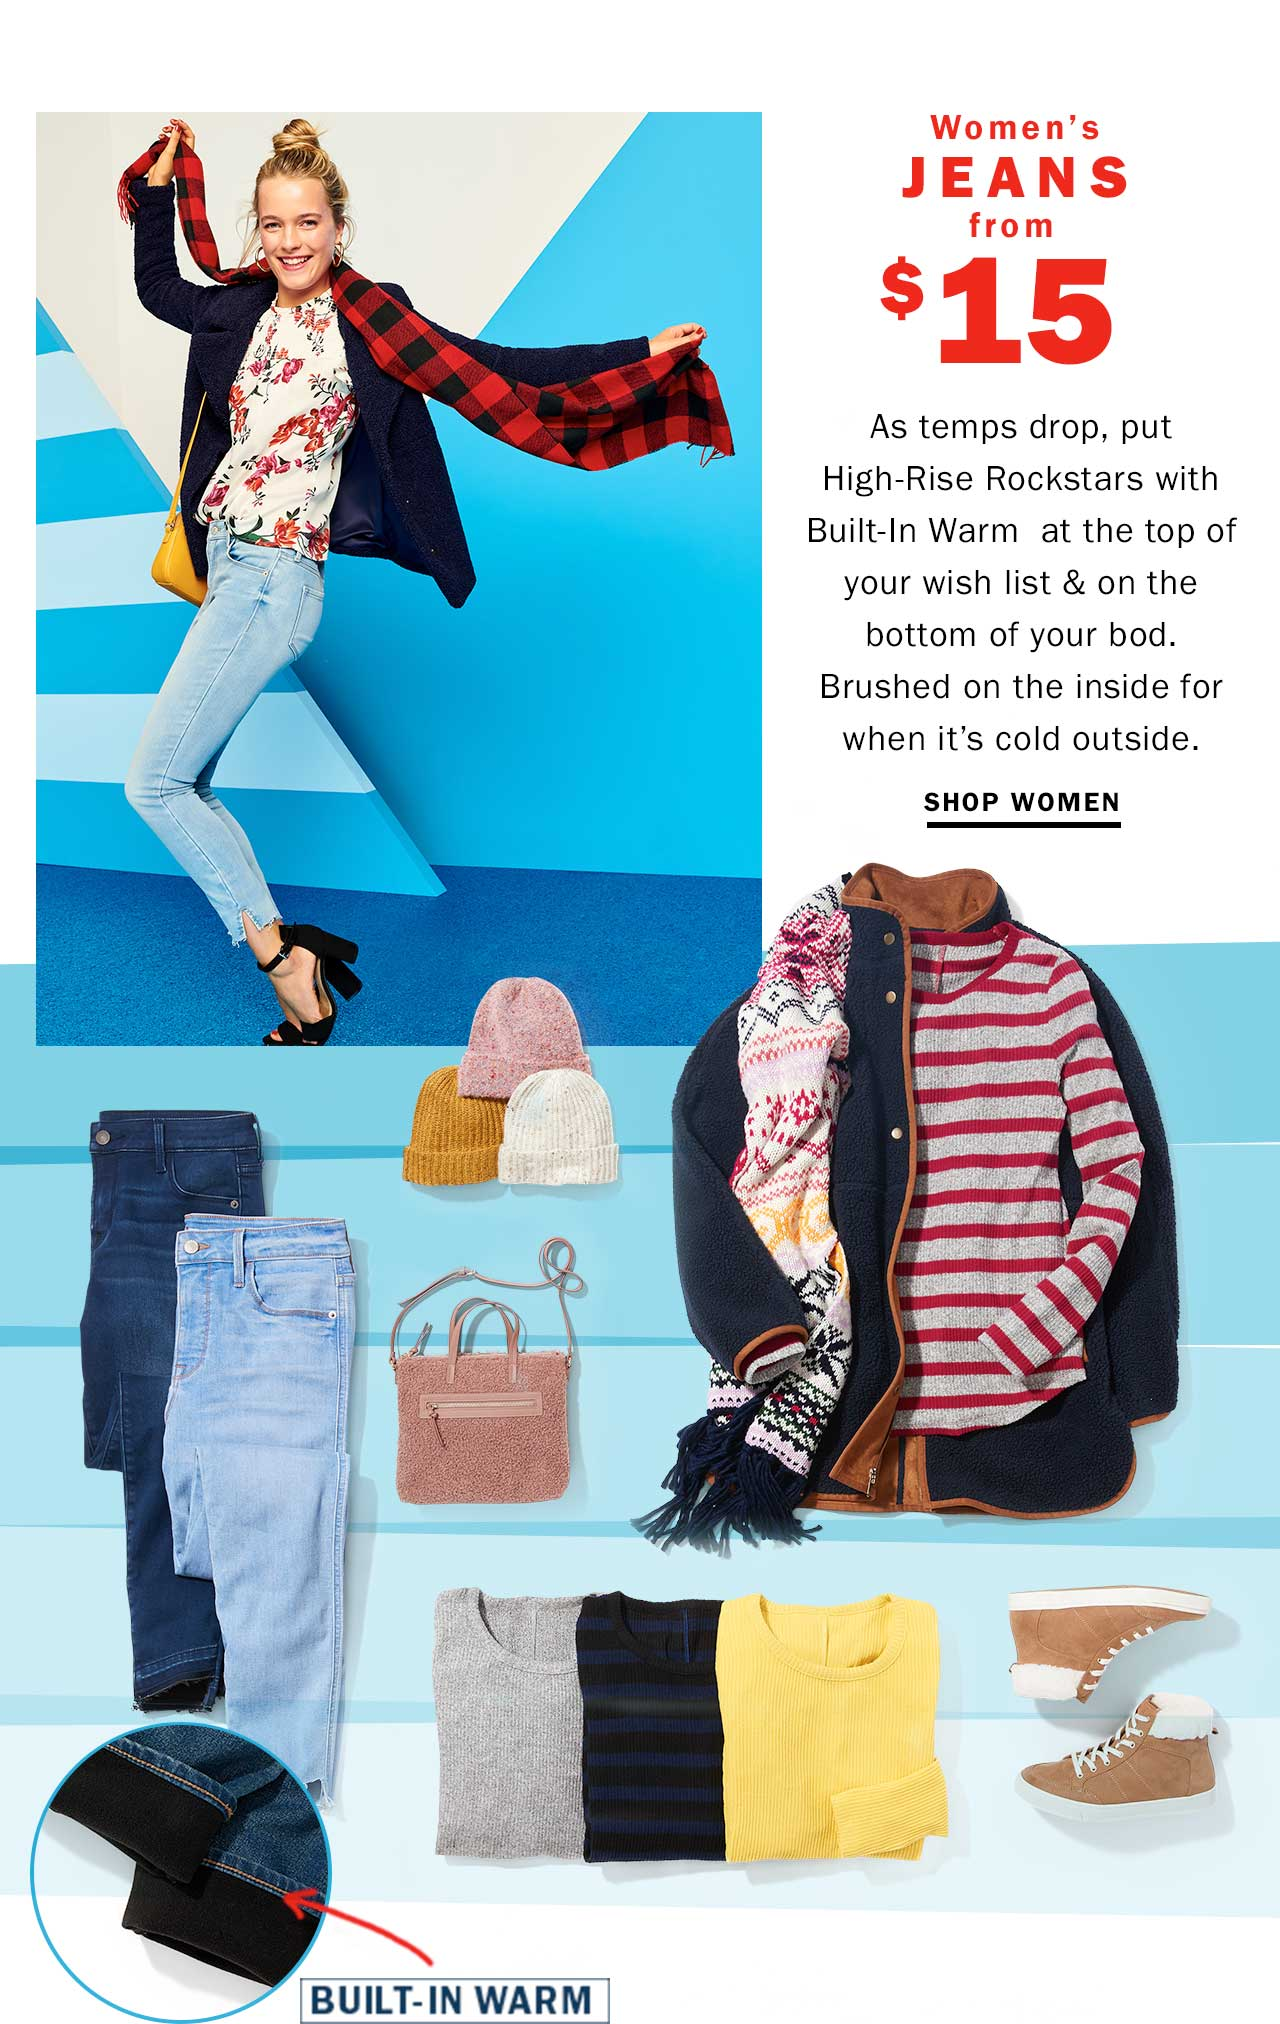 Women's jeans from $15